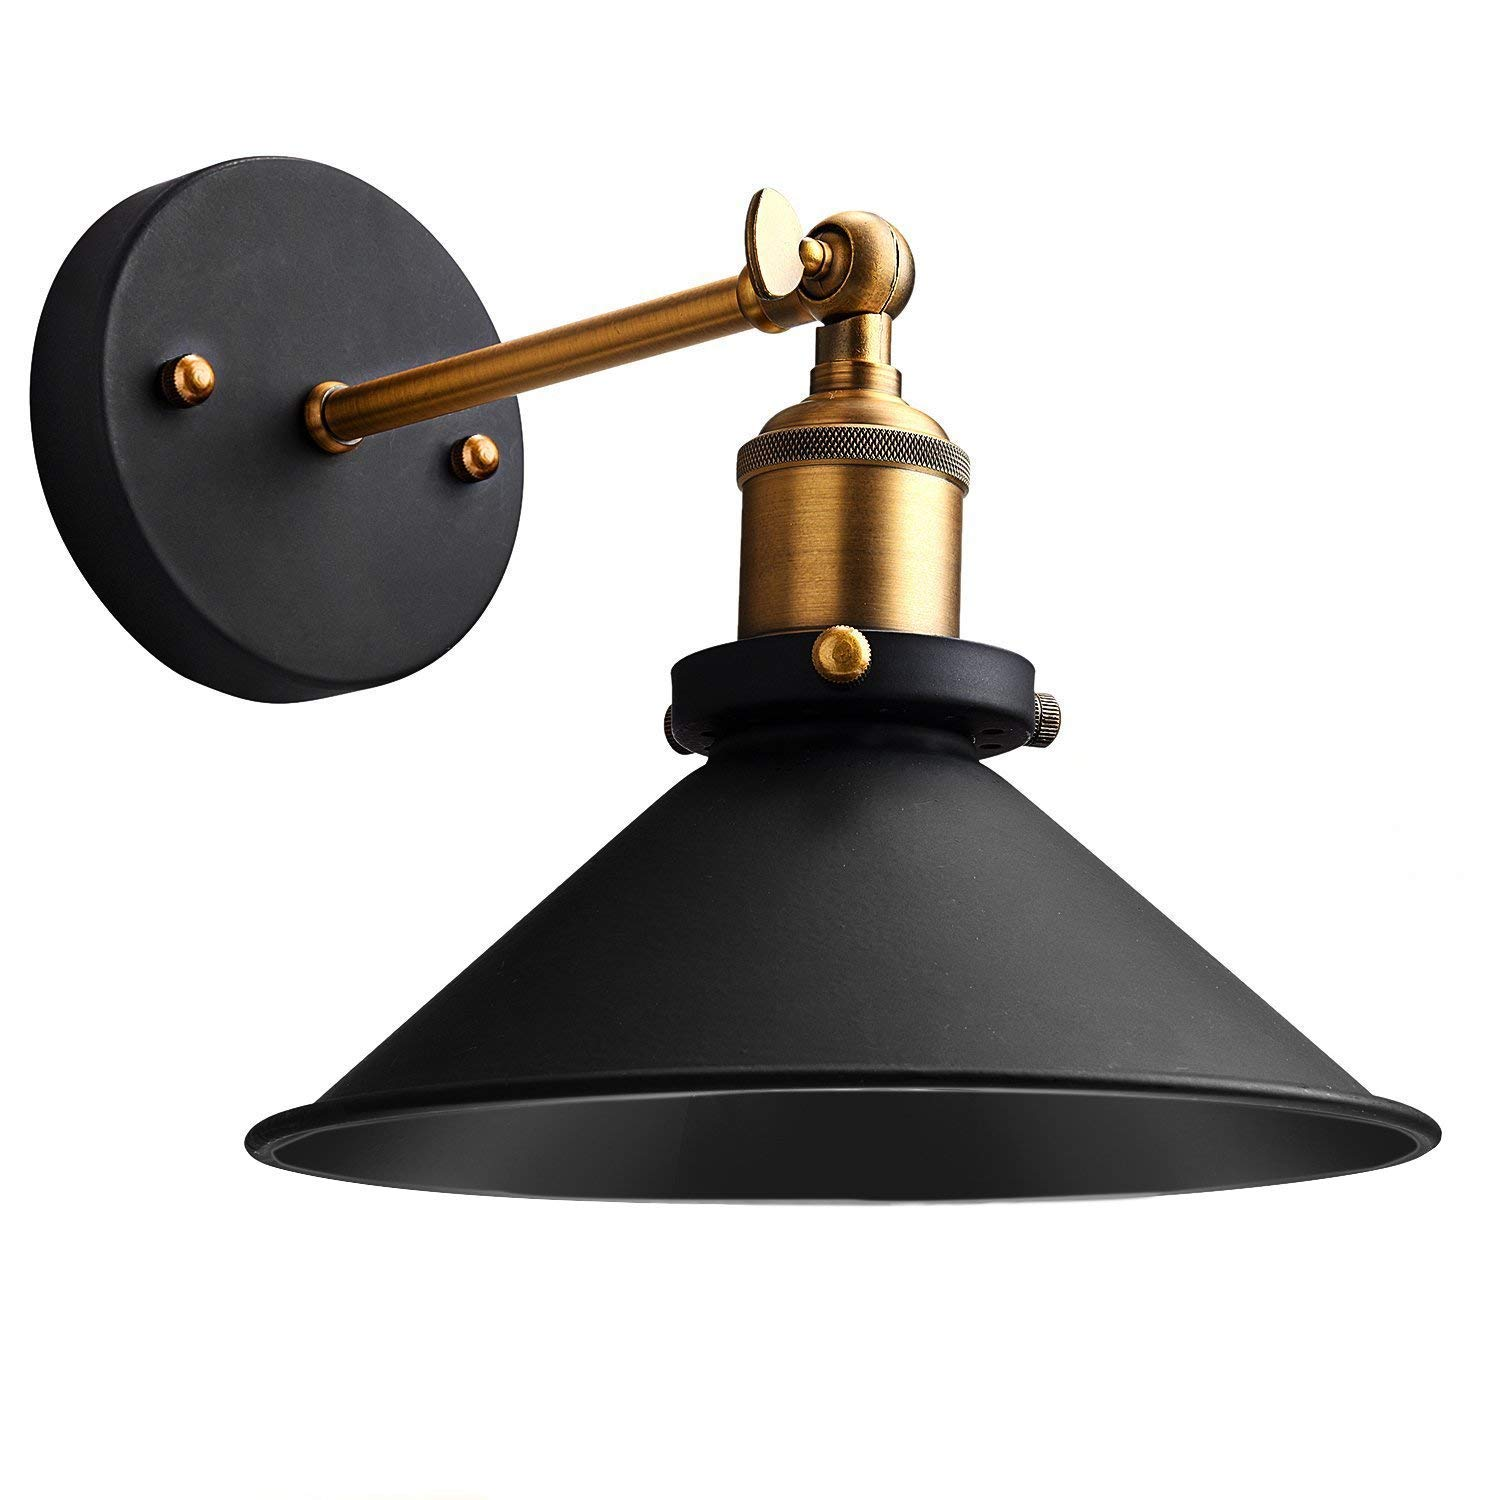 Industrial Wall Sconce, Rustic Black Metal Wall Sconce Adjustable 240 Degree Ceiling Light, Black Industrial Vintage Edison Pendant Light for Bathroom, Cafe and Club